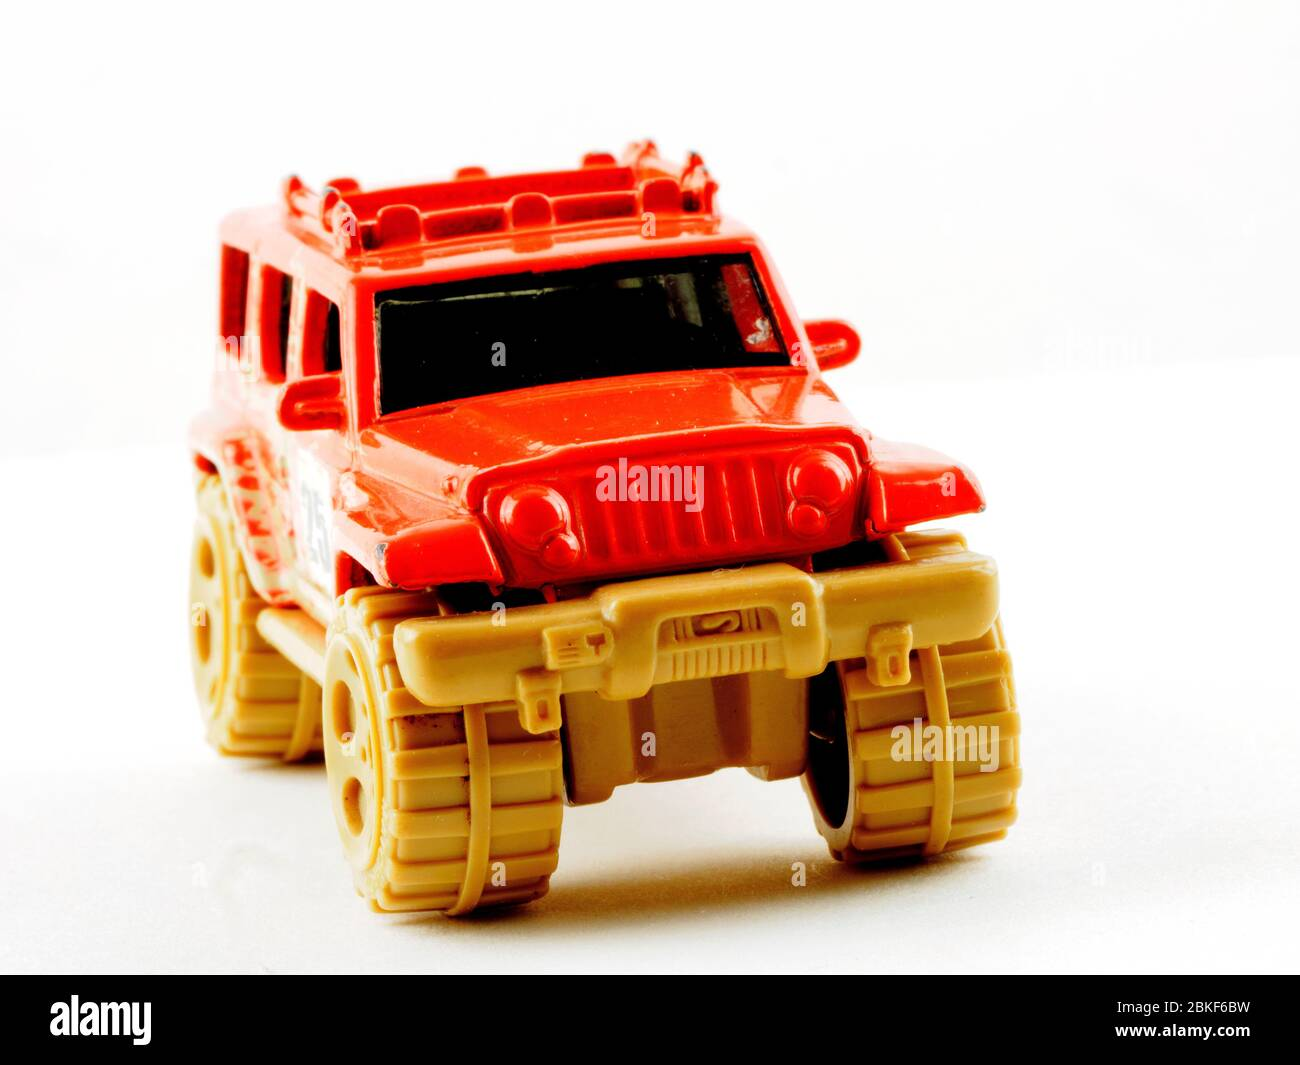 Matchbox Jeep model toy car isolated in white background Stock Photo